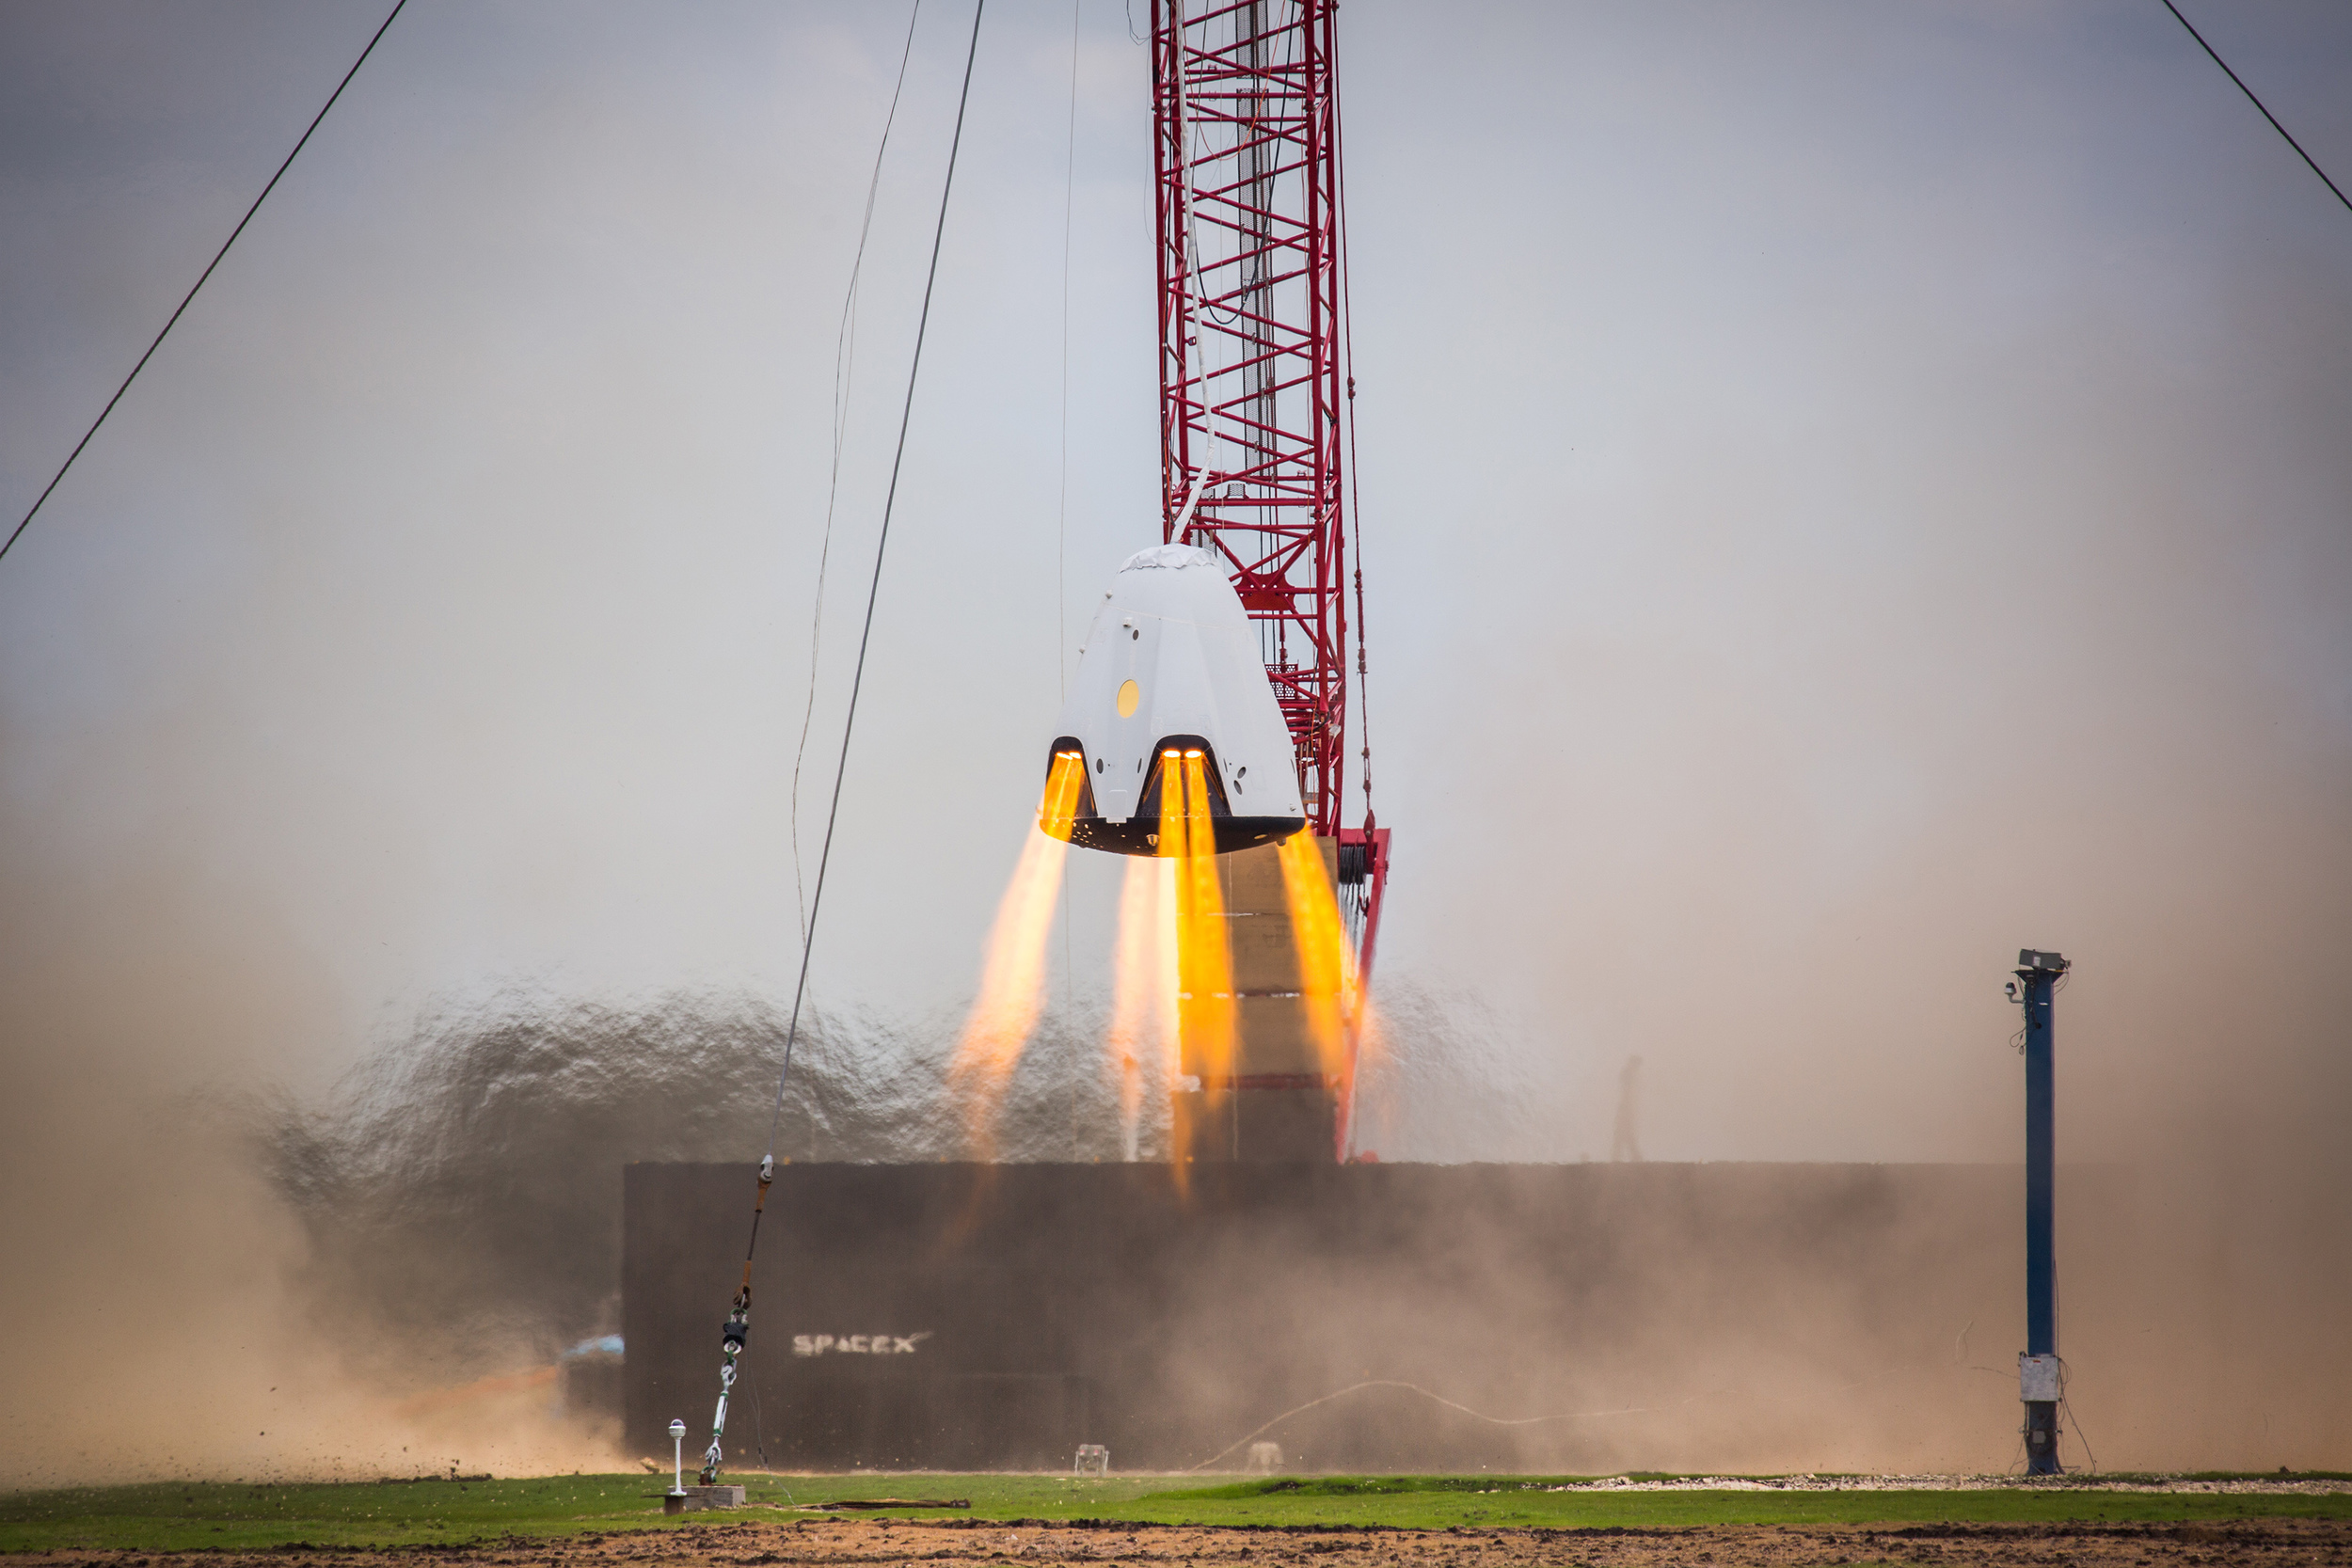 SpaceX tests the Crew Dragon's hover capability in Texas in their efforts to propulsively land the craft in the future. Photo Credit: SpaceX